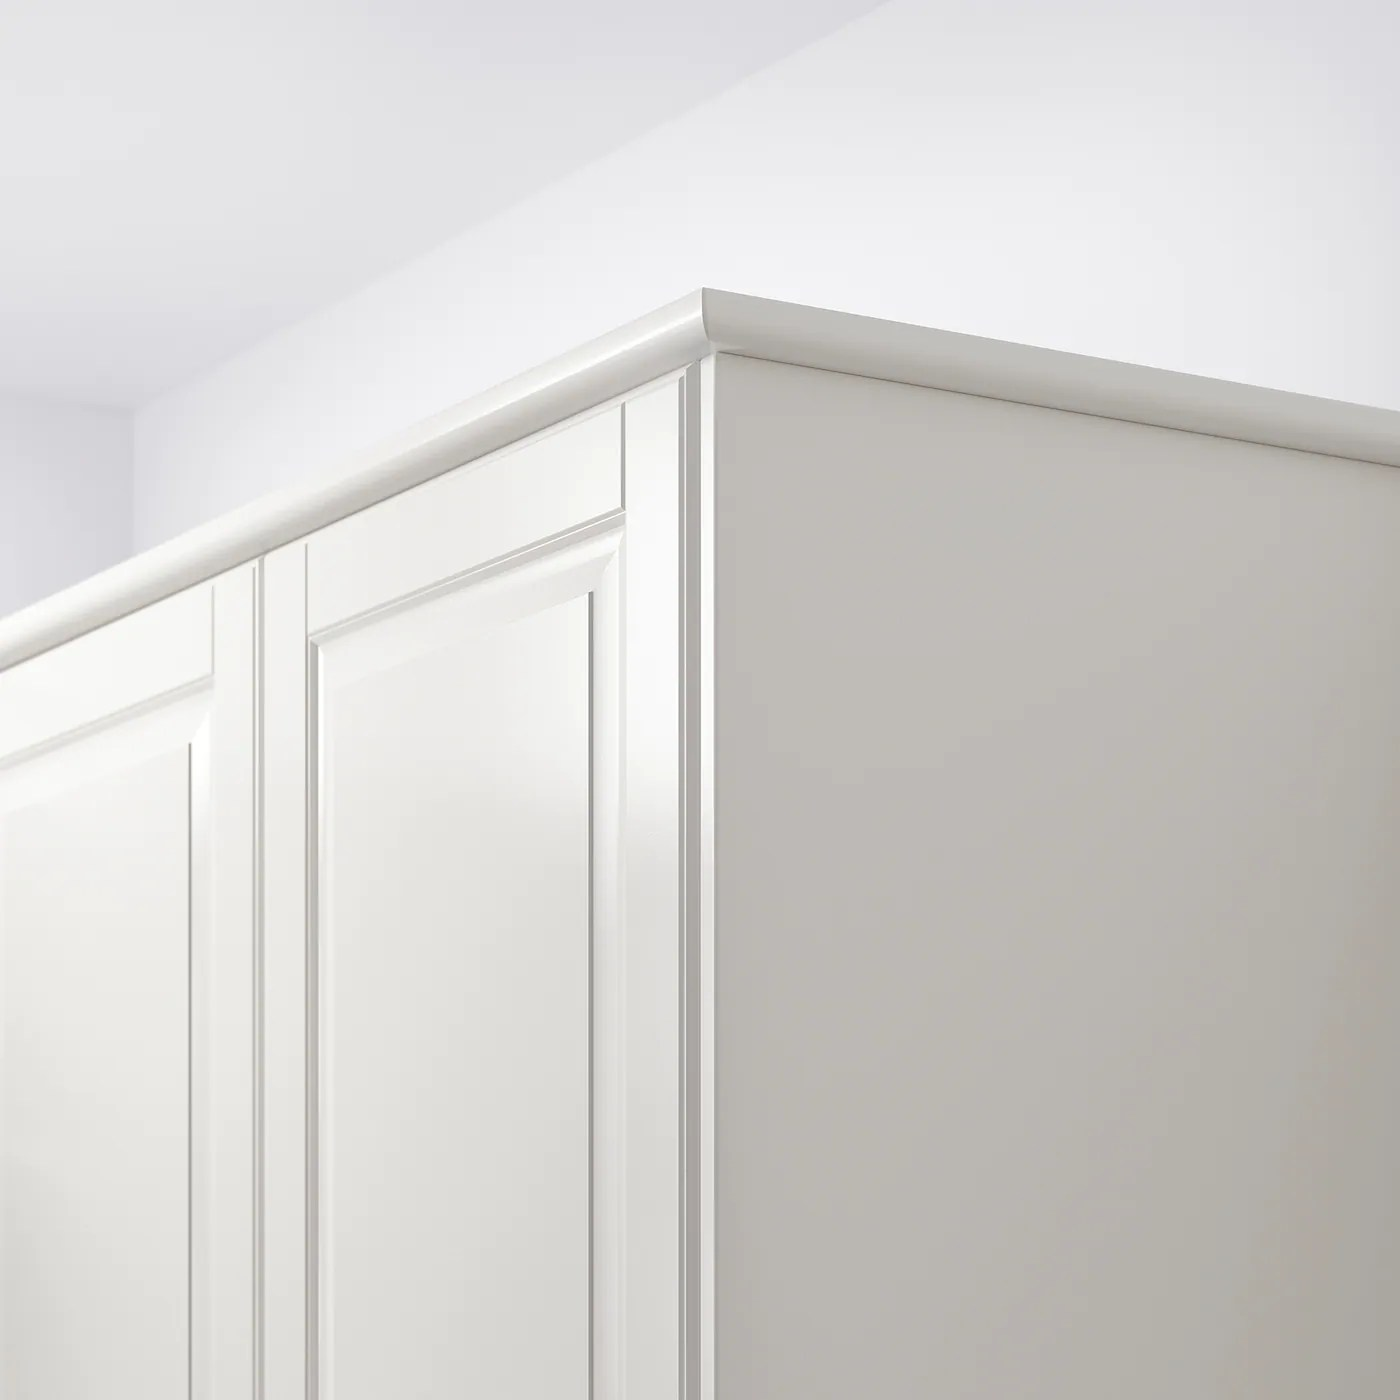 forbattra rounded deco strip off white 87